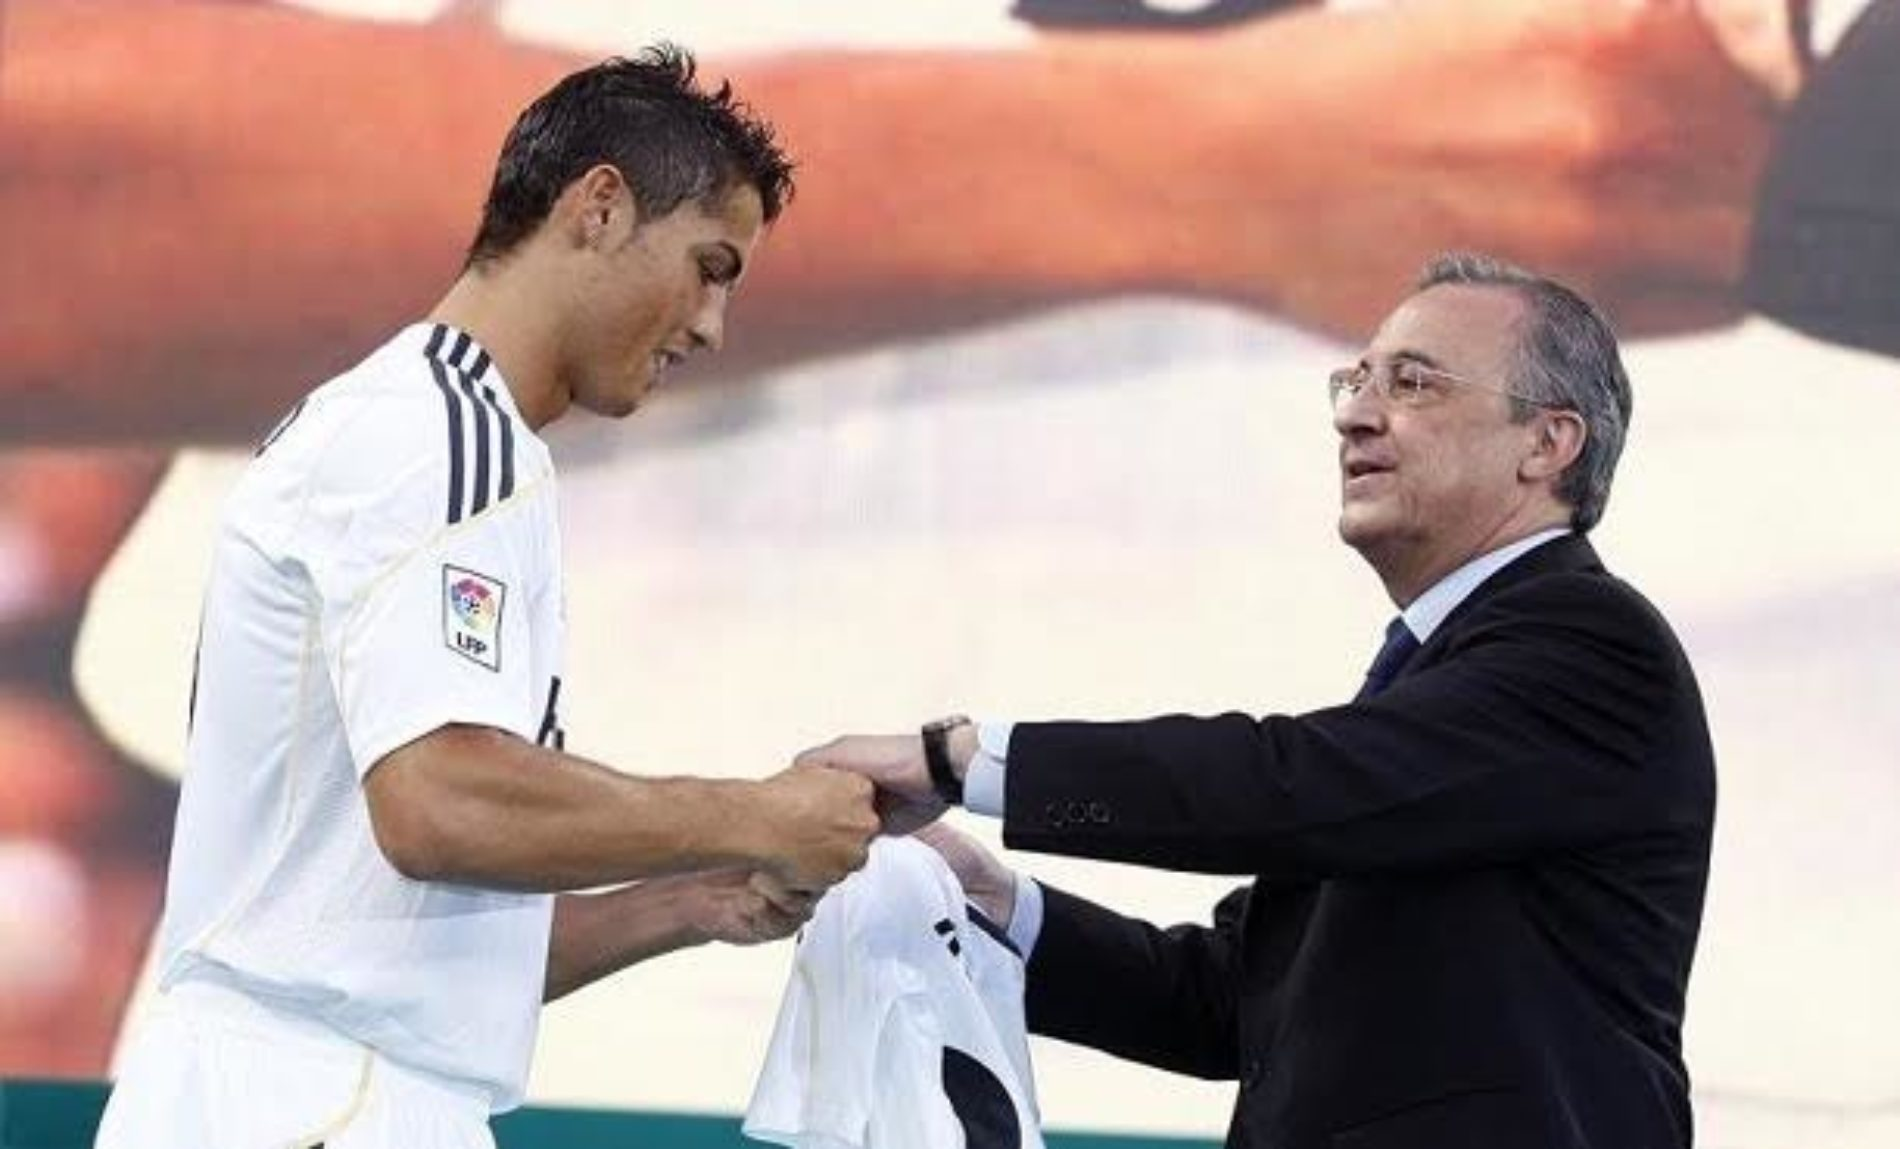 Real Madrid president bans Cristiano Ronaldo from travelling to Morocco to spend time with friend